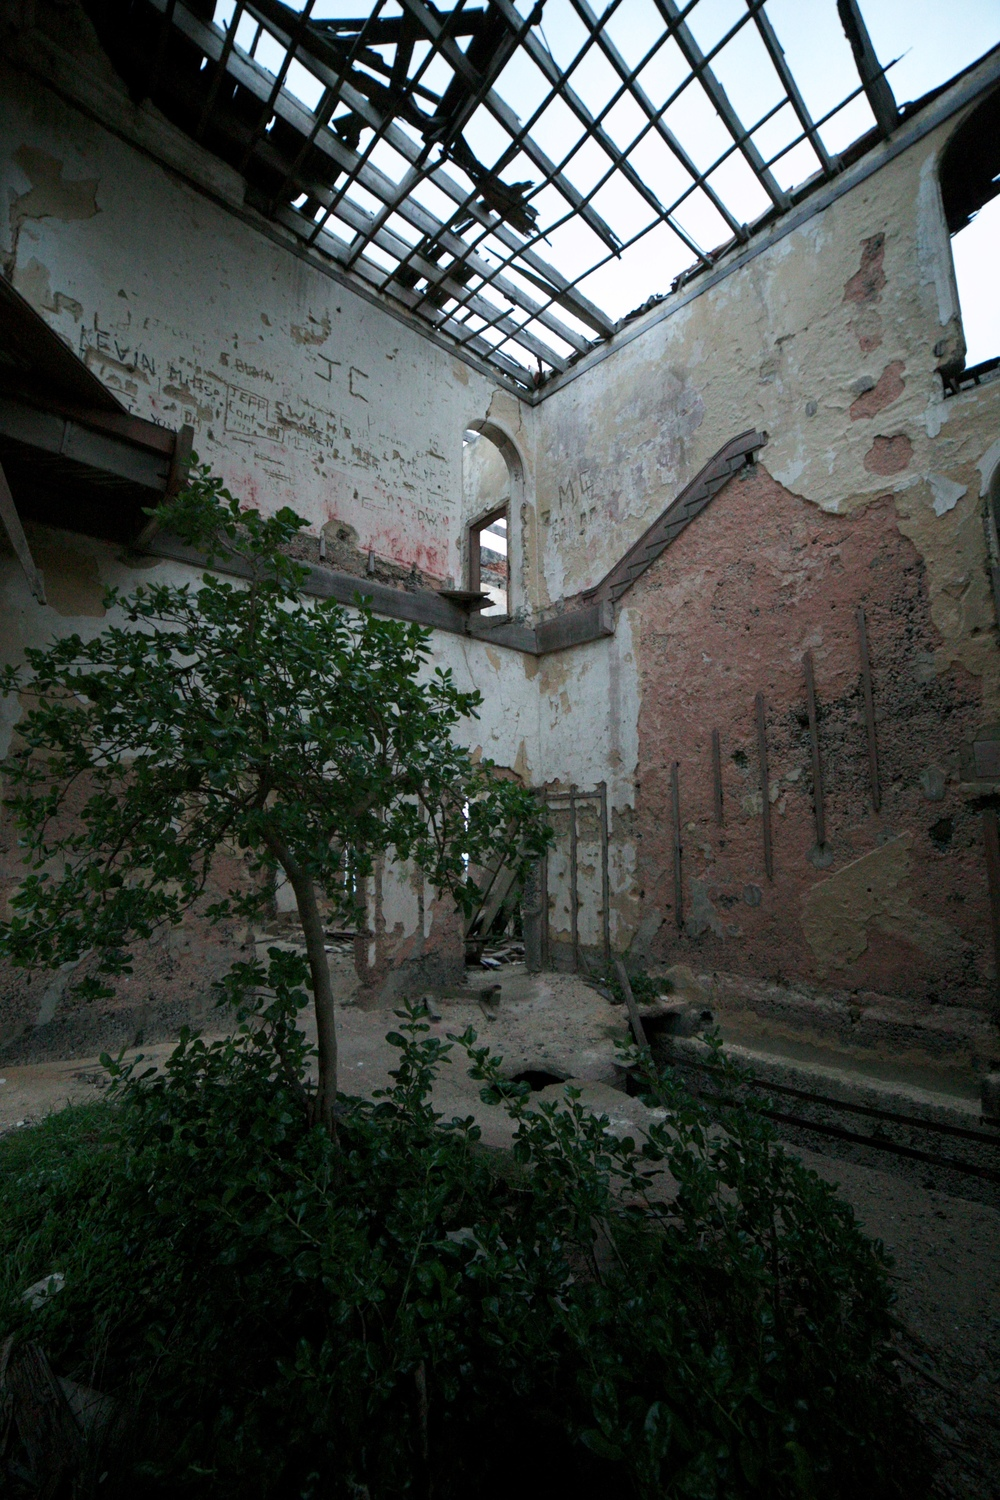 Trees growing inside the abandoned castle.